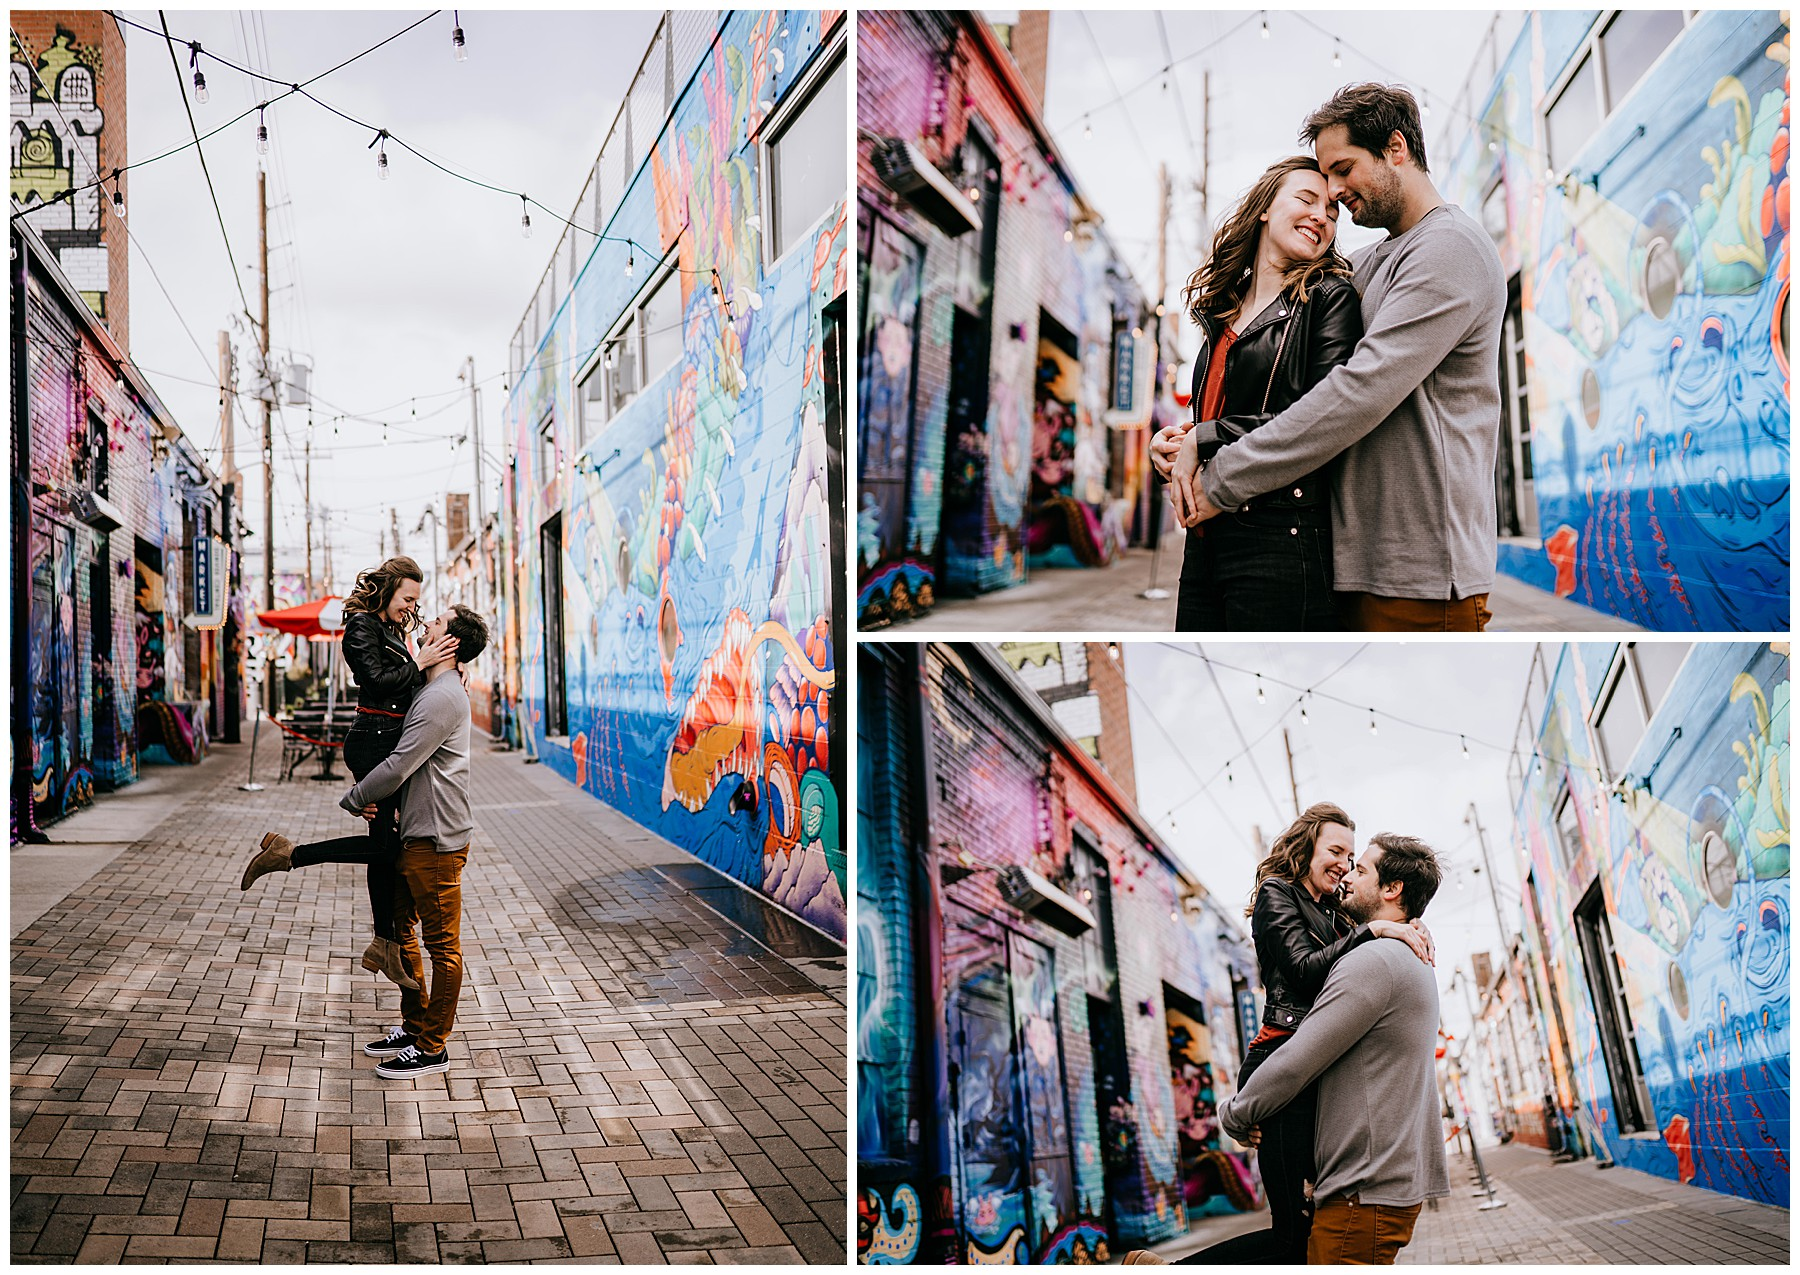 Jozie & Sam Engagement Session RiNo District Denver CO 45